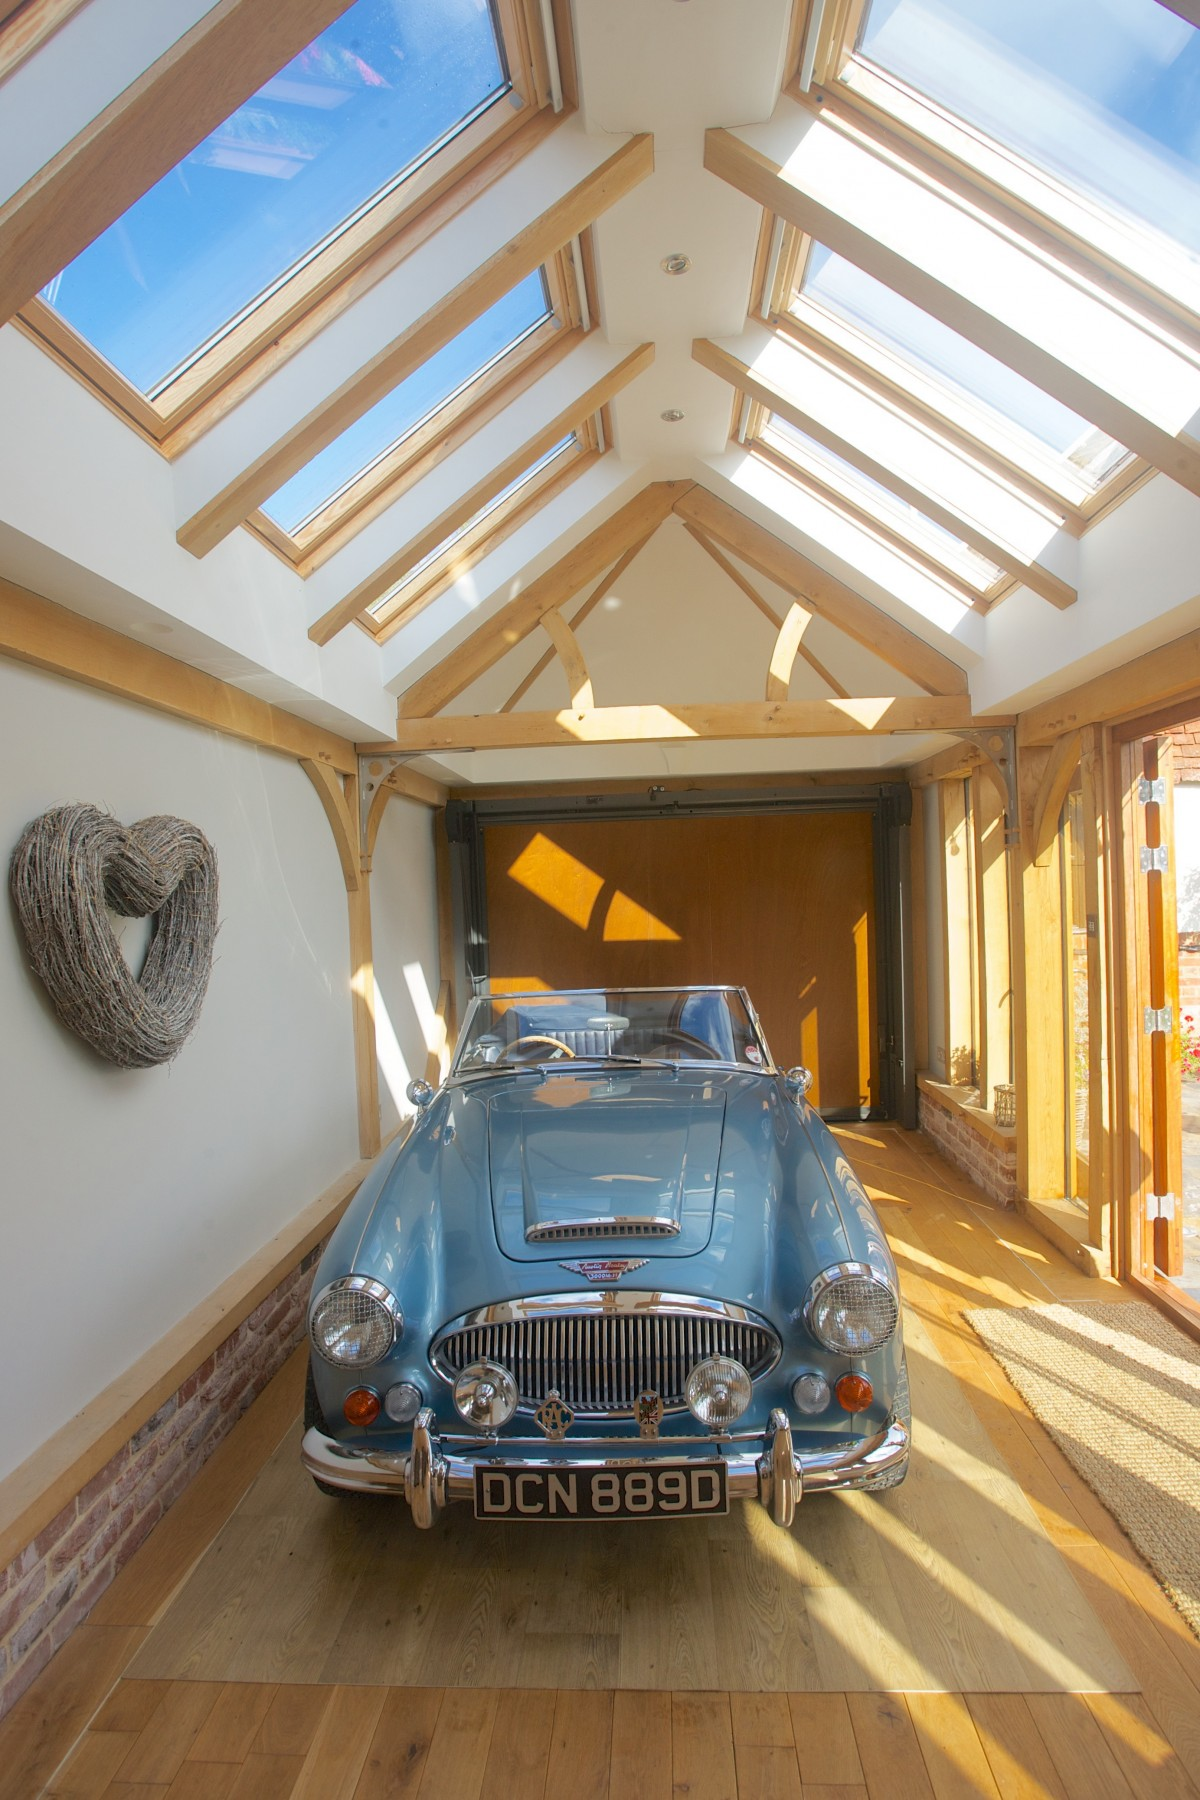 This fully insulated, light and airy building lends itself well to a multitude of uses, including looking after your pride and joy!